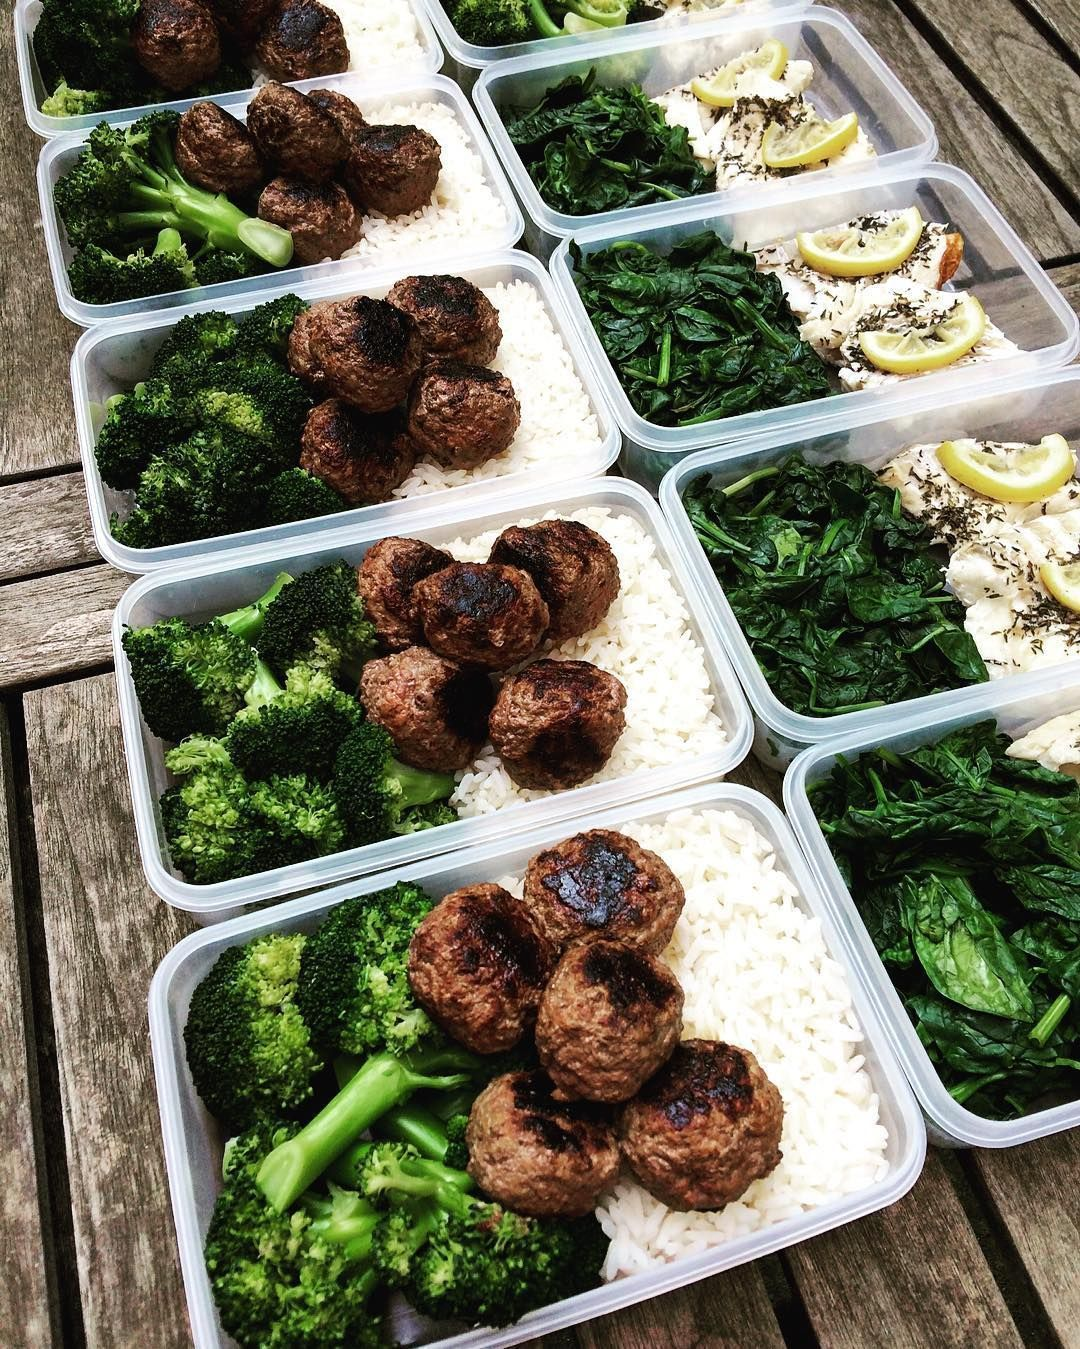 19 Meal Prep Ideas to Build Your Ideal Body  Finance  Gallery Sepedaku